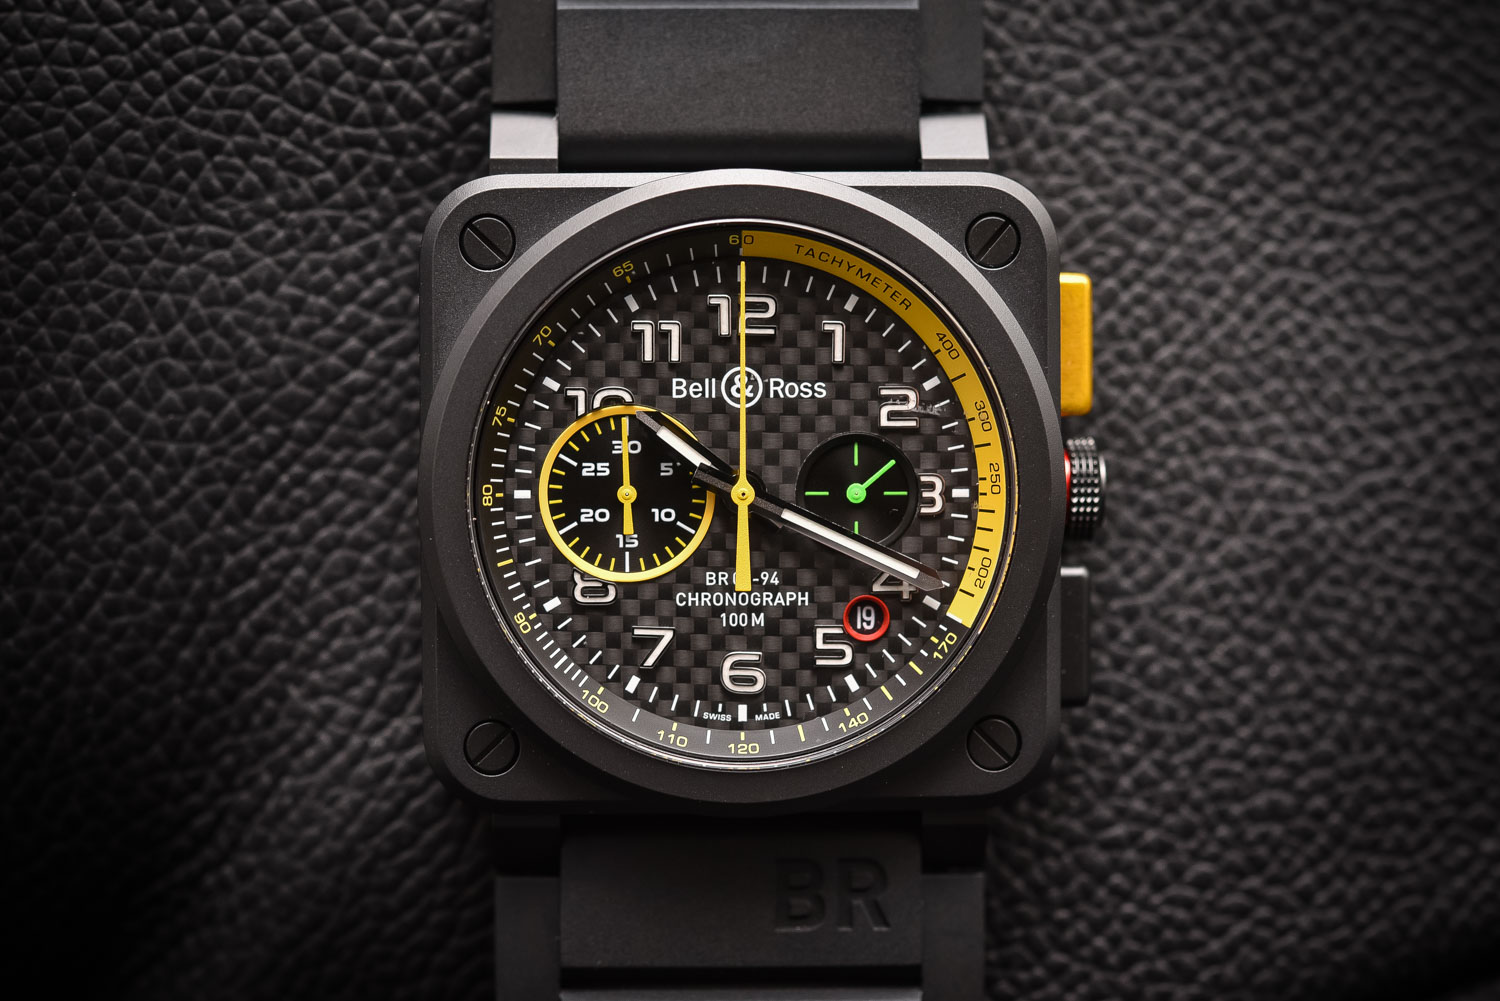 monochrome racing techframe auto from baselworld inspired watches chronograph ferrari hublot tourbillon car